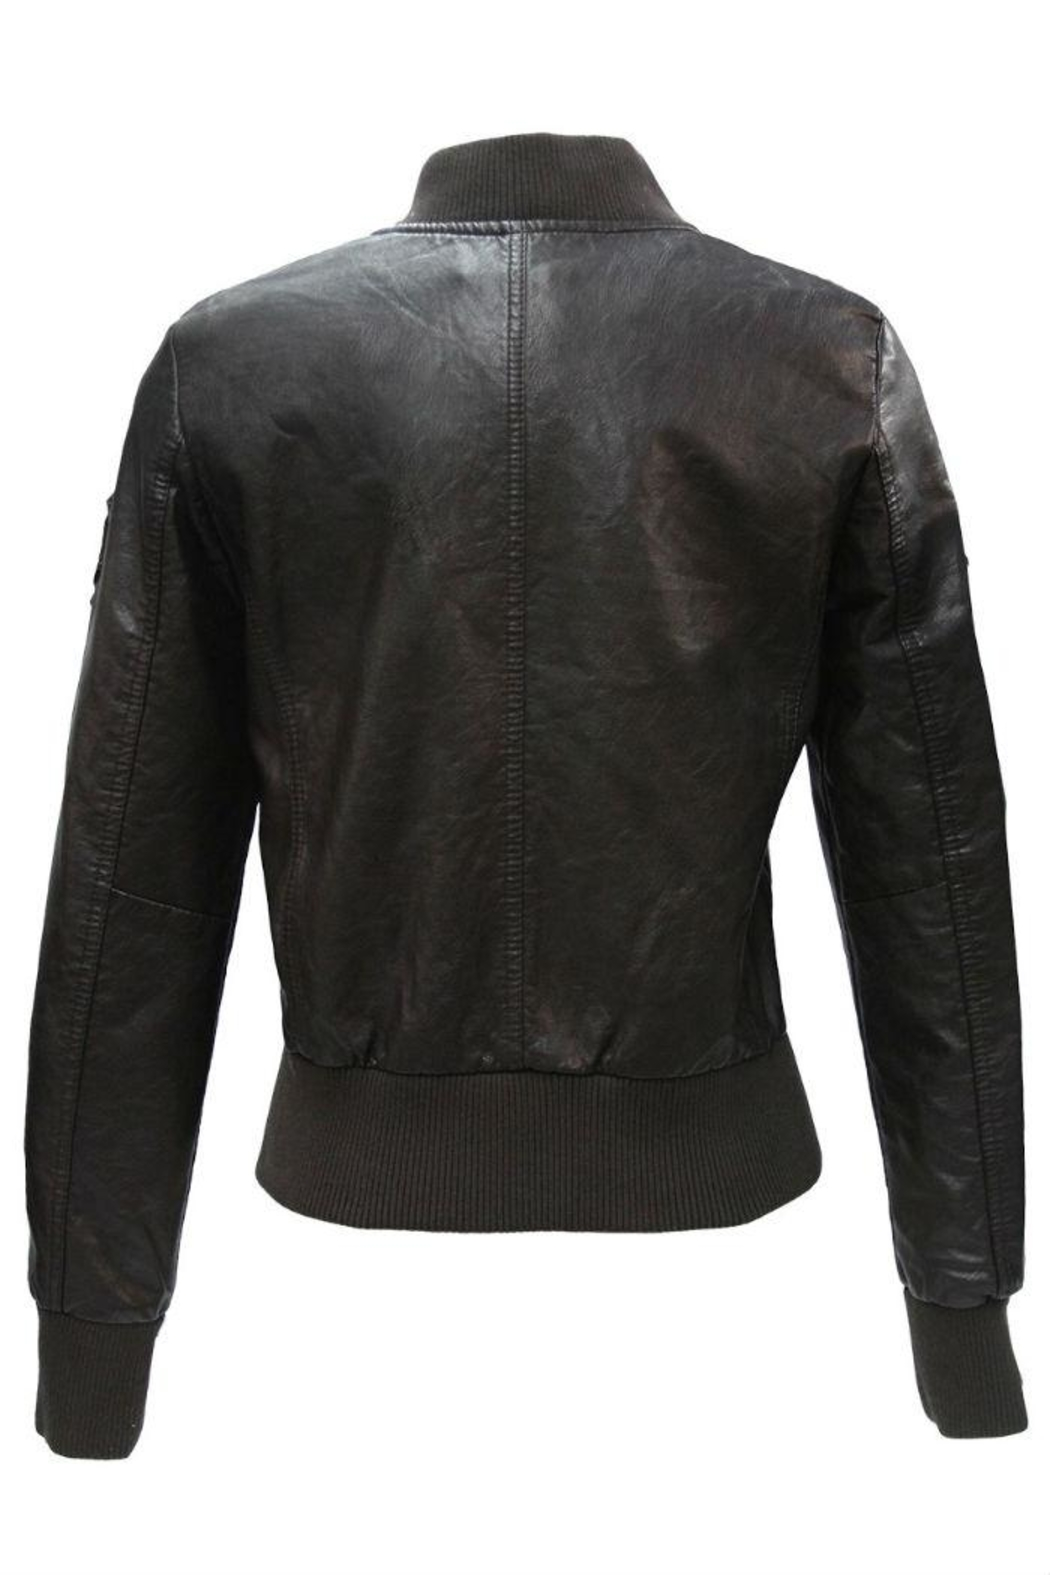 Top Gun Vegan Leather Jacket - Front Full Image